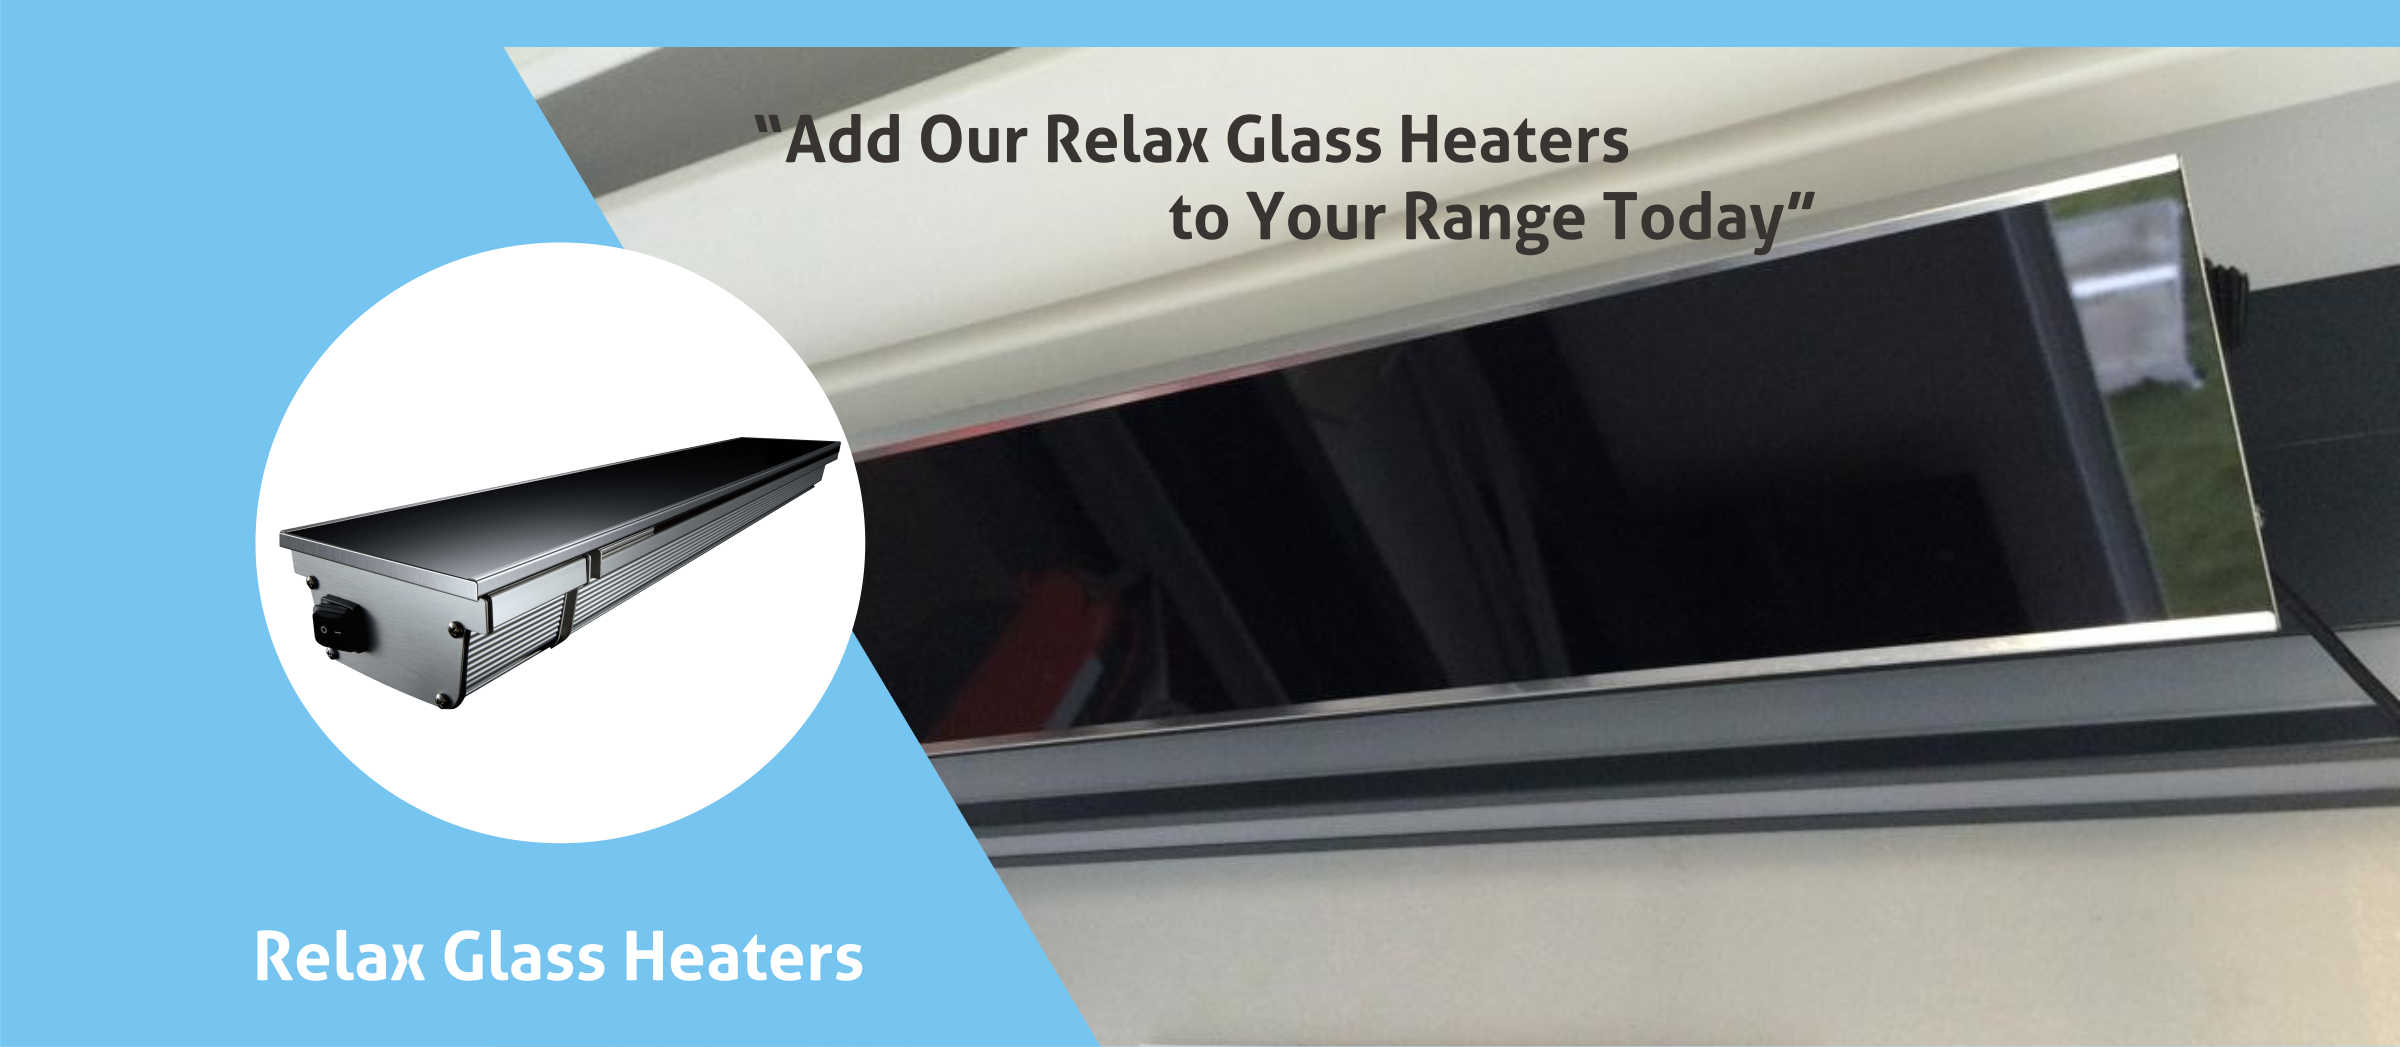 Relax Glass Heater